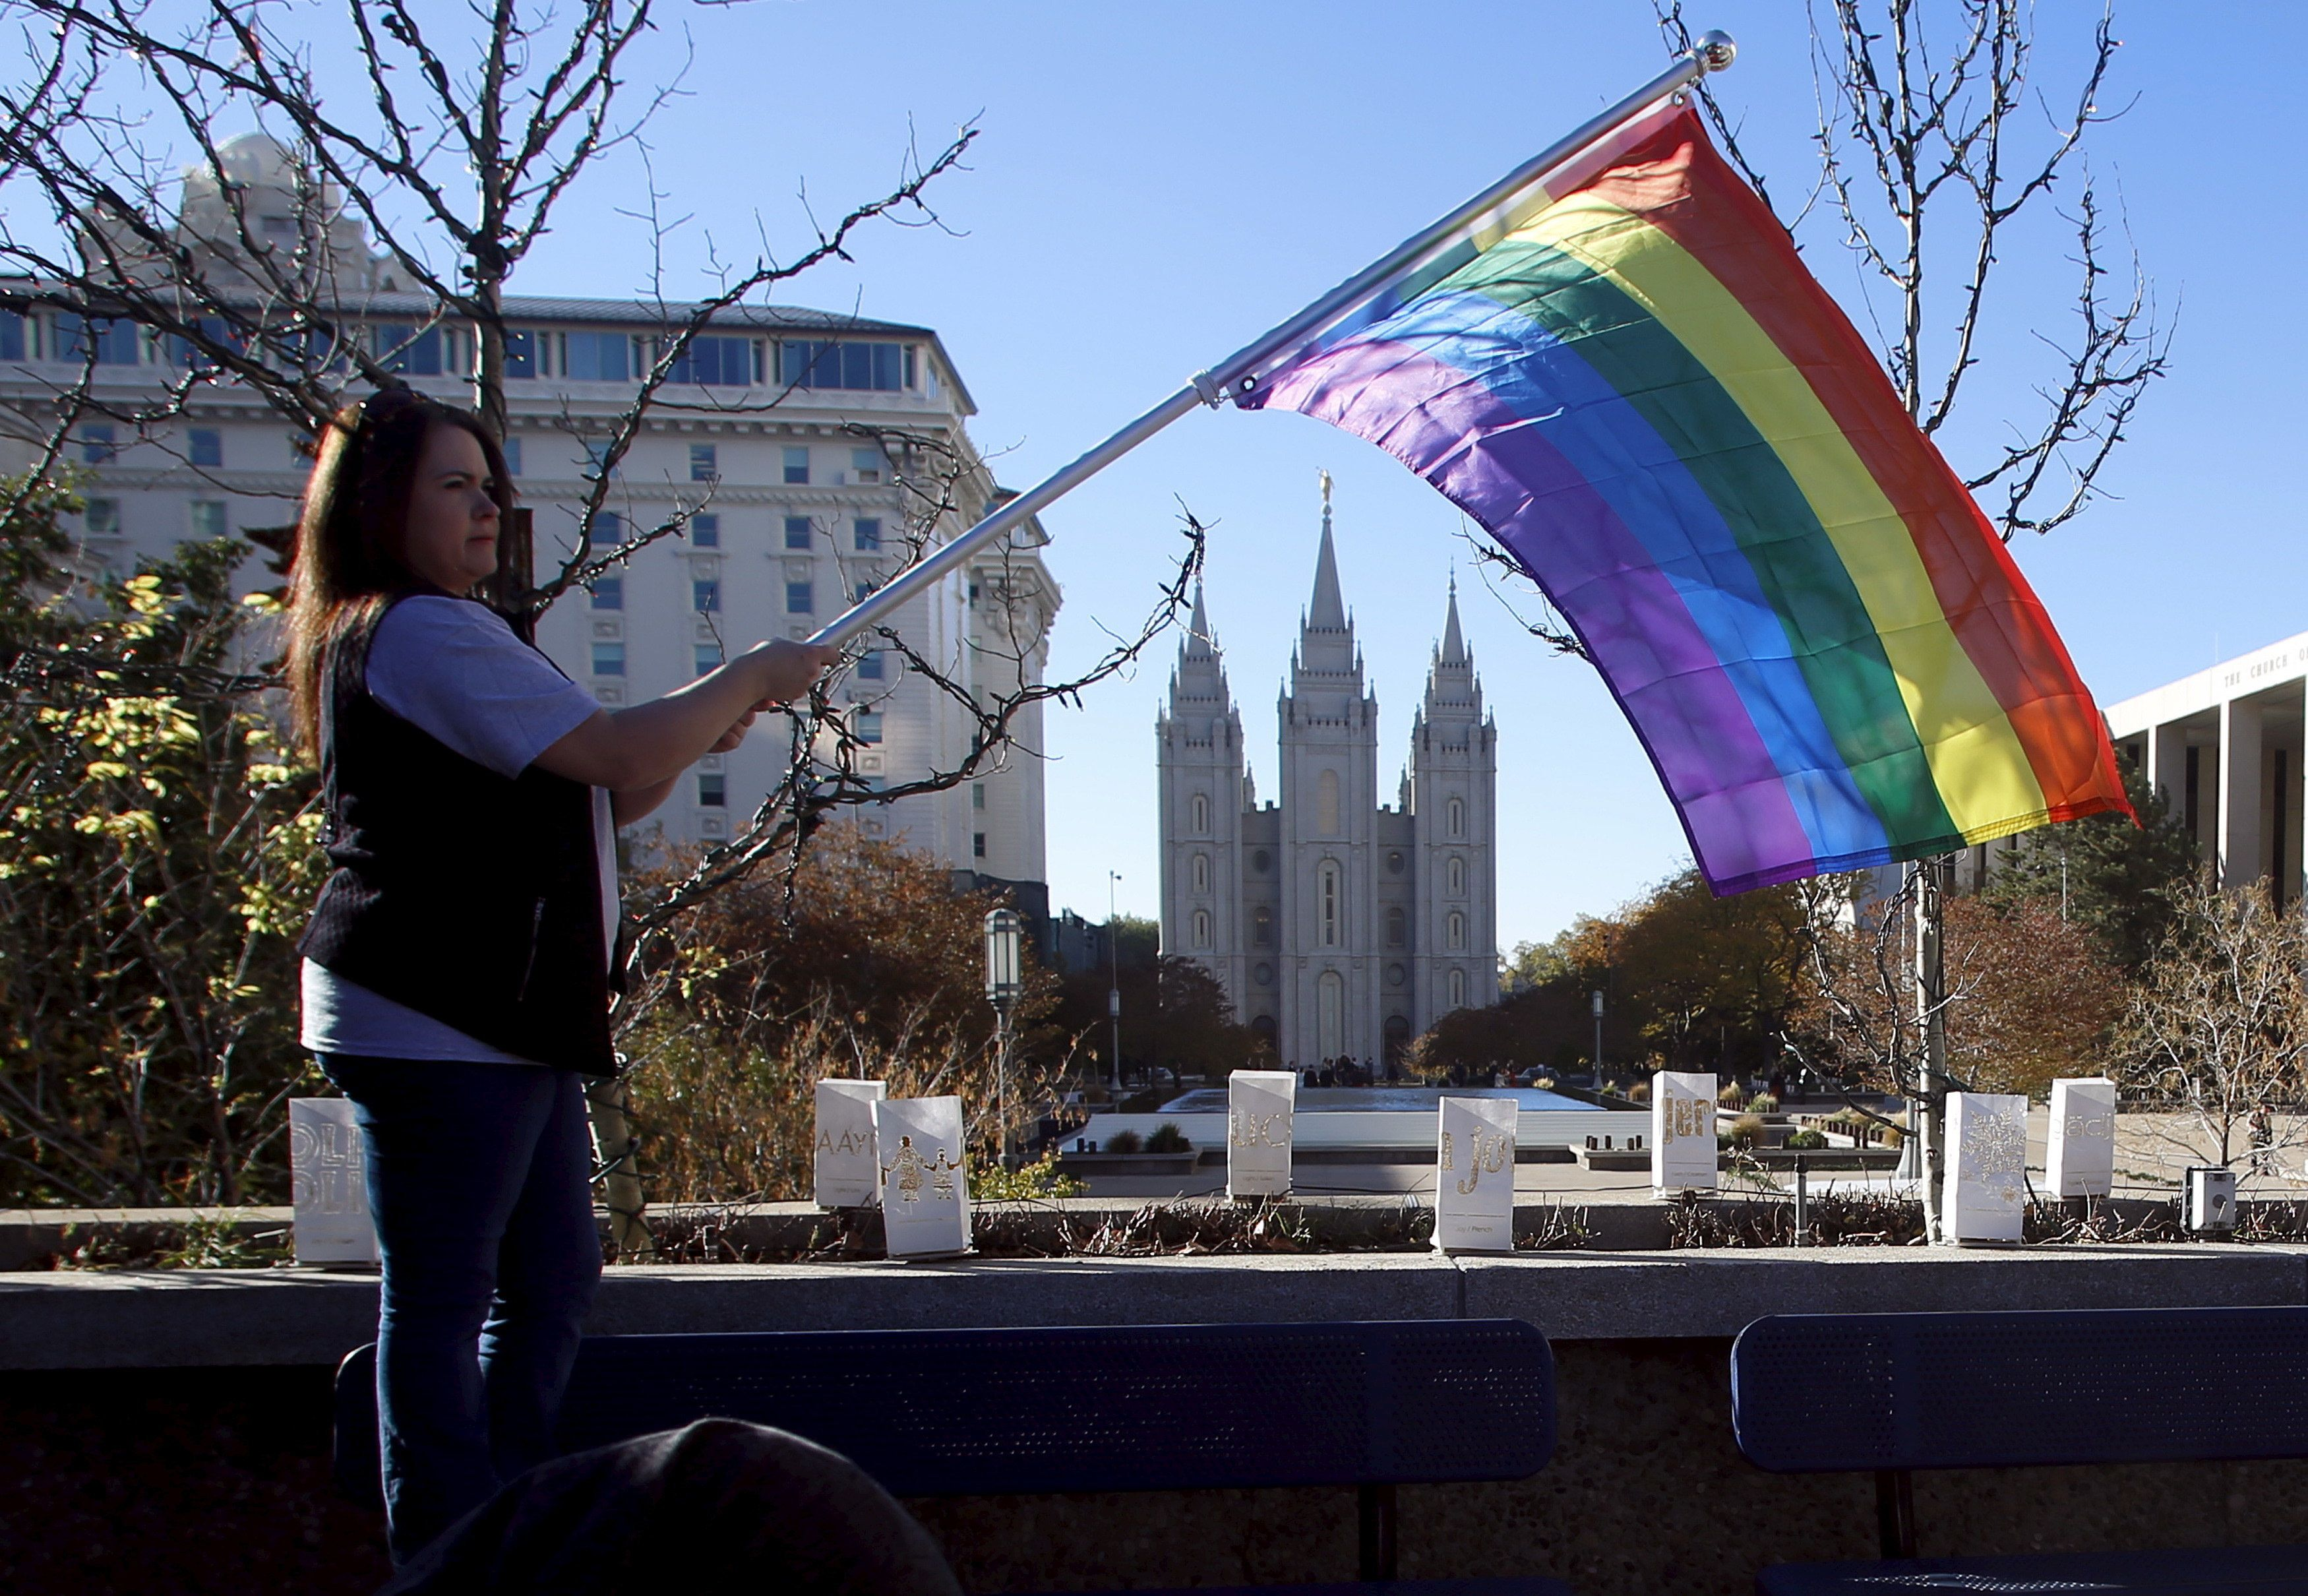 Lds doctrine on homosexuality in japan